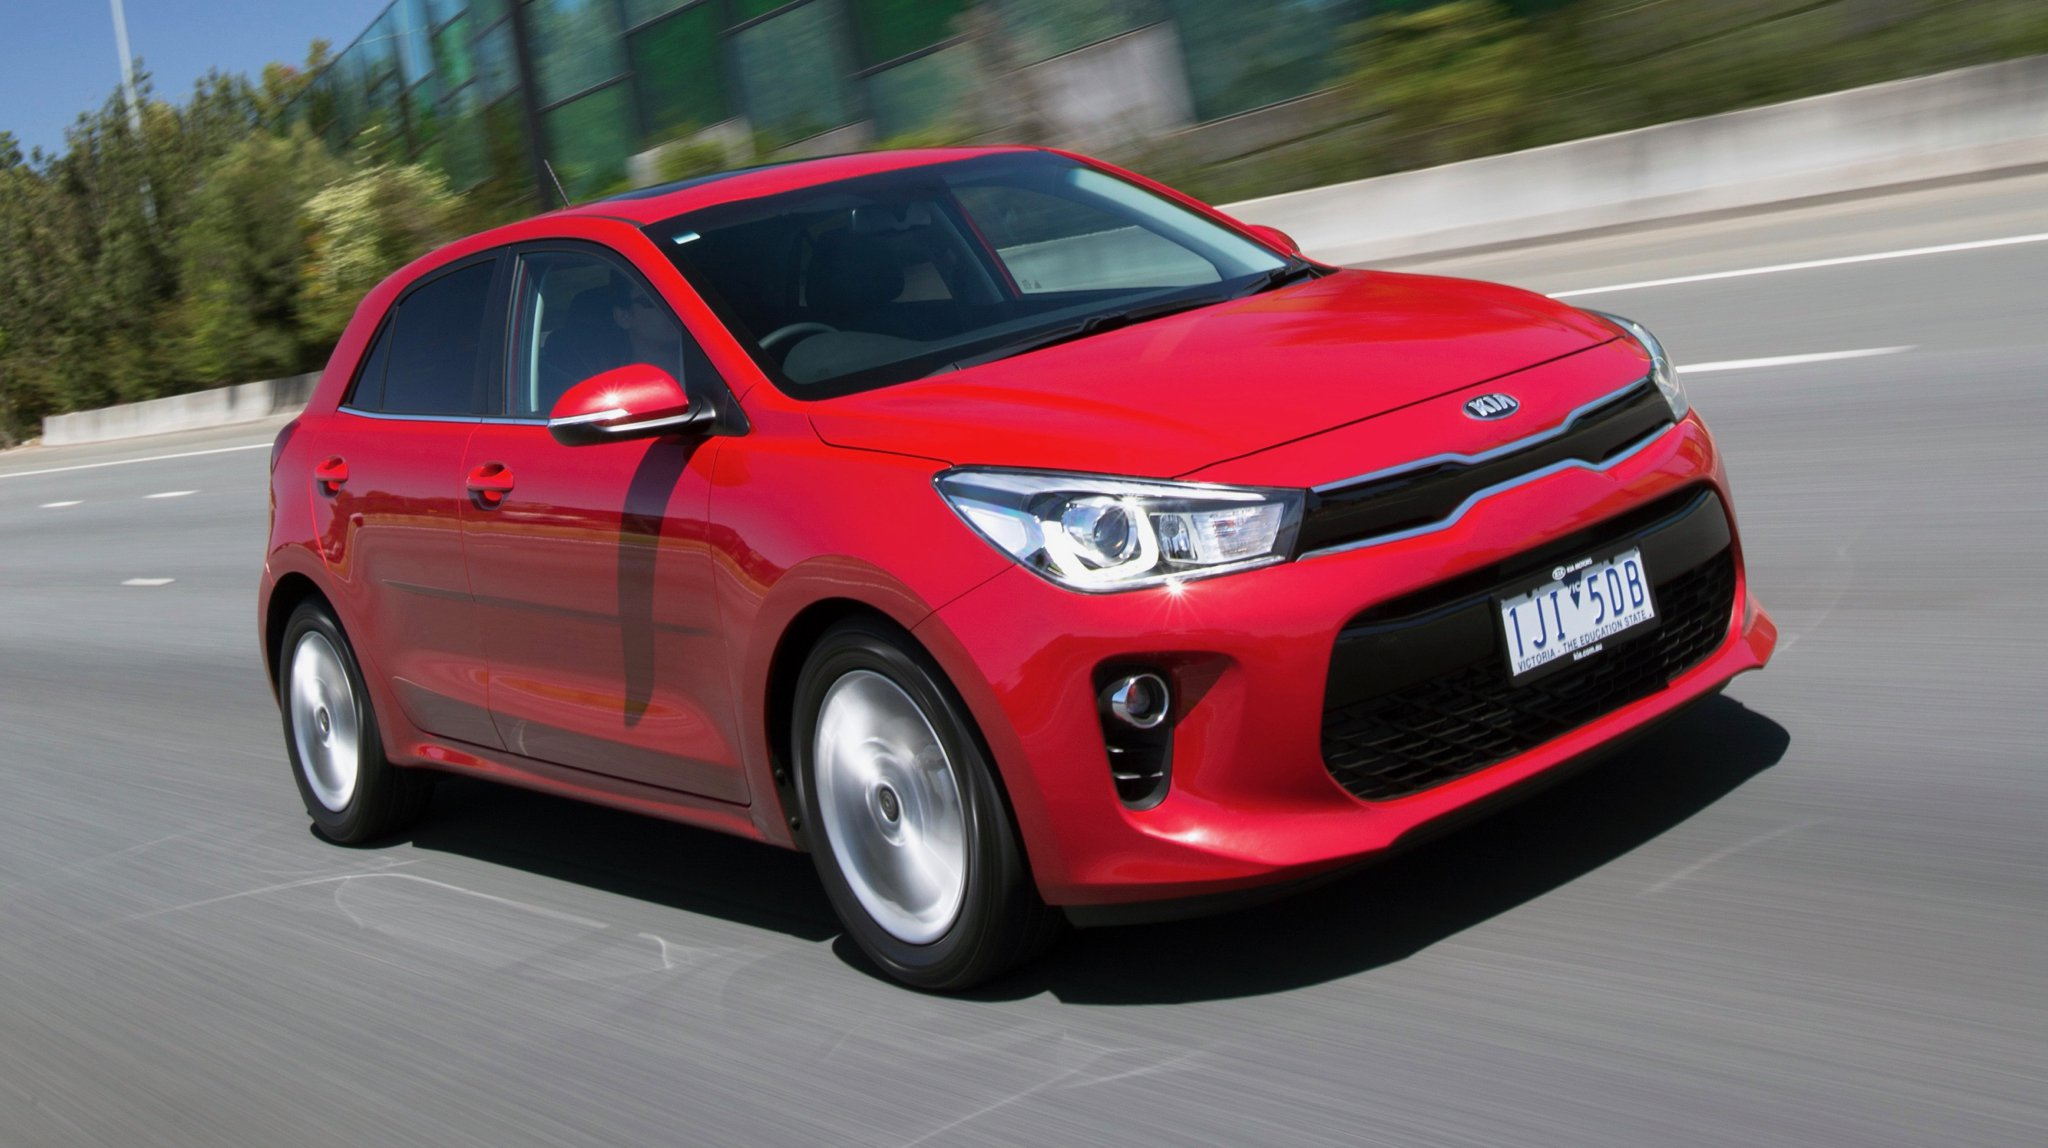 Kia rio photo - 1